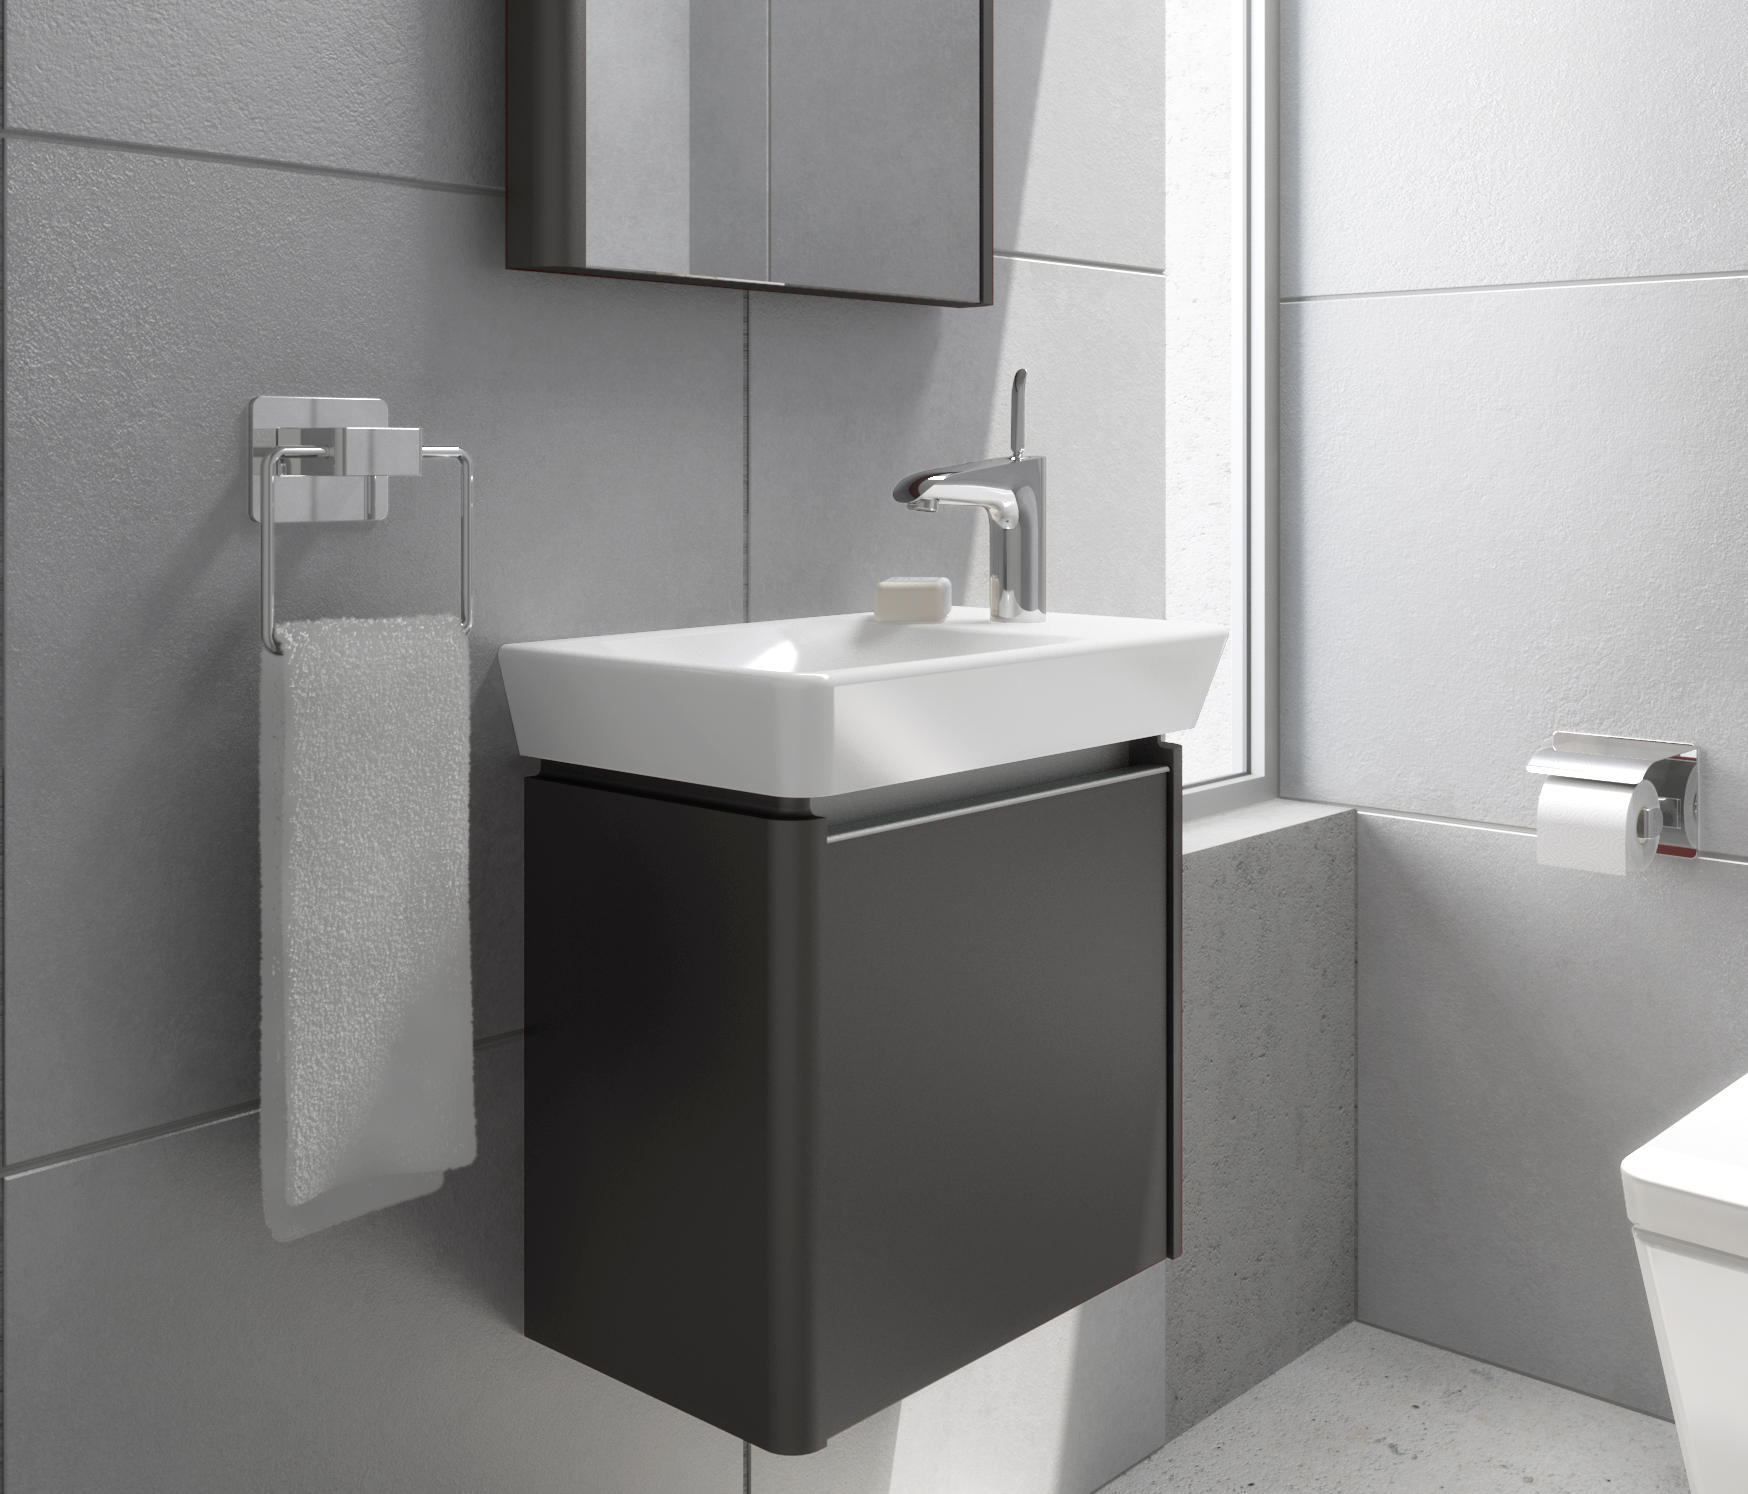 t4 wand wc klosetts von vitra bad architonic. Black Bedroom Furniture Sets. Home Design Ideas